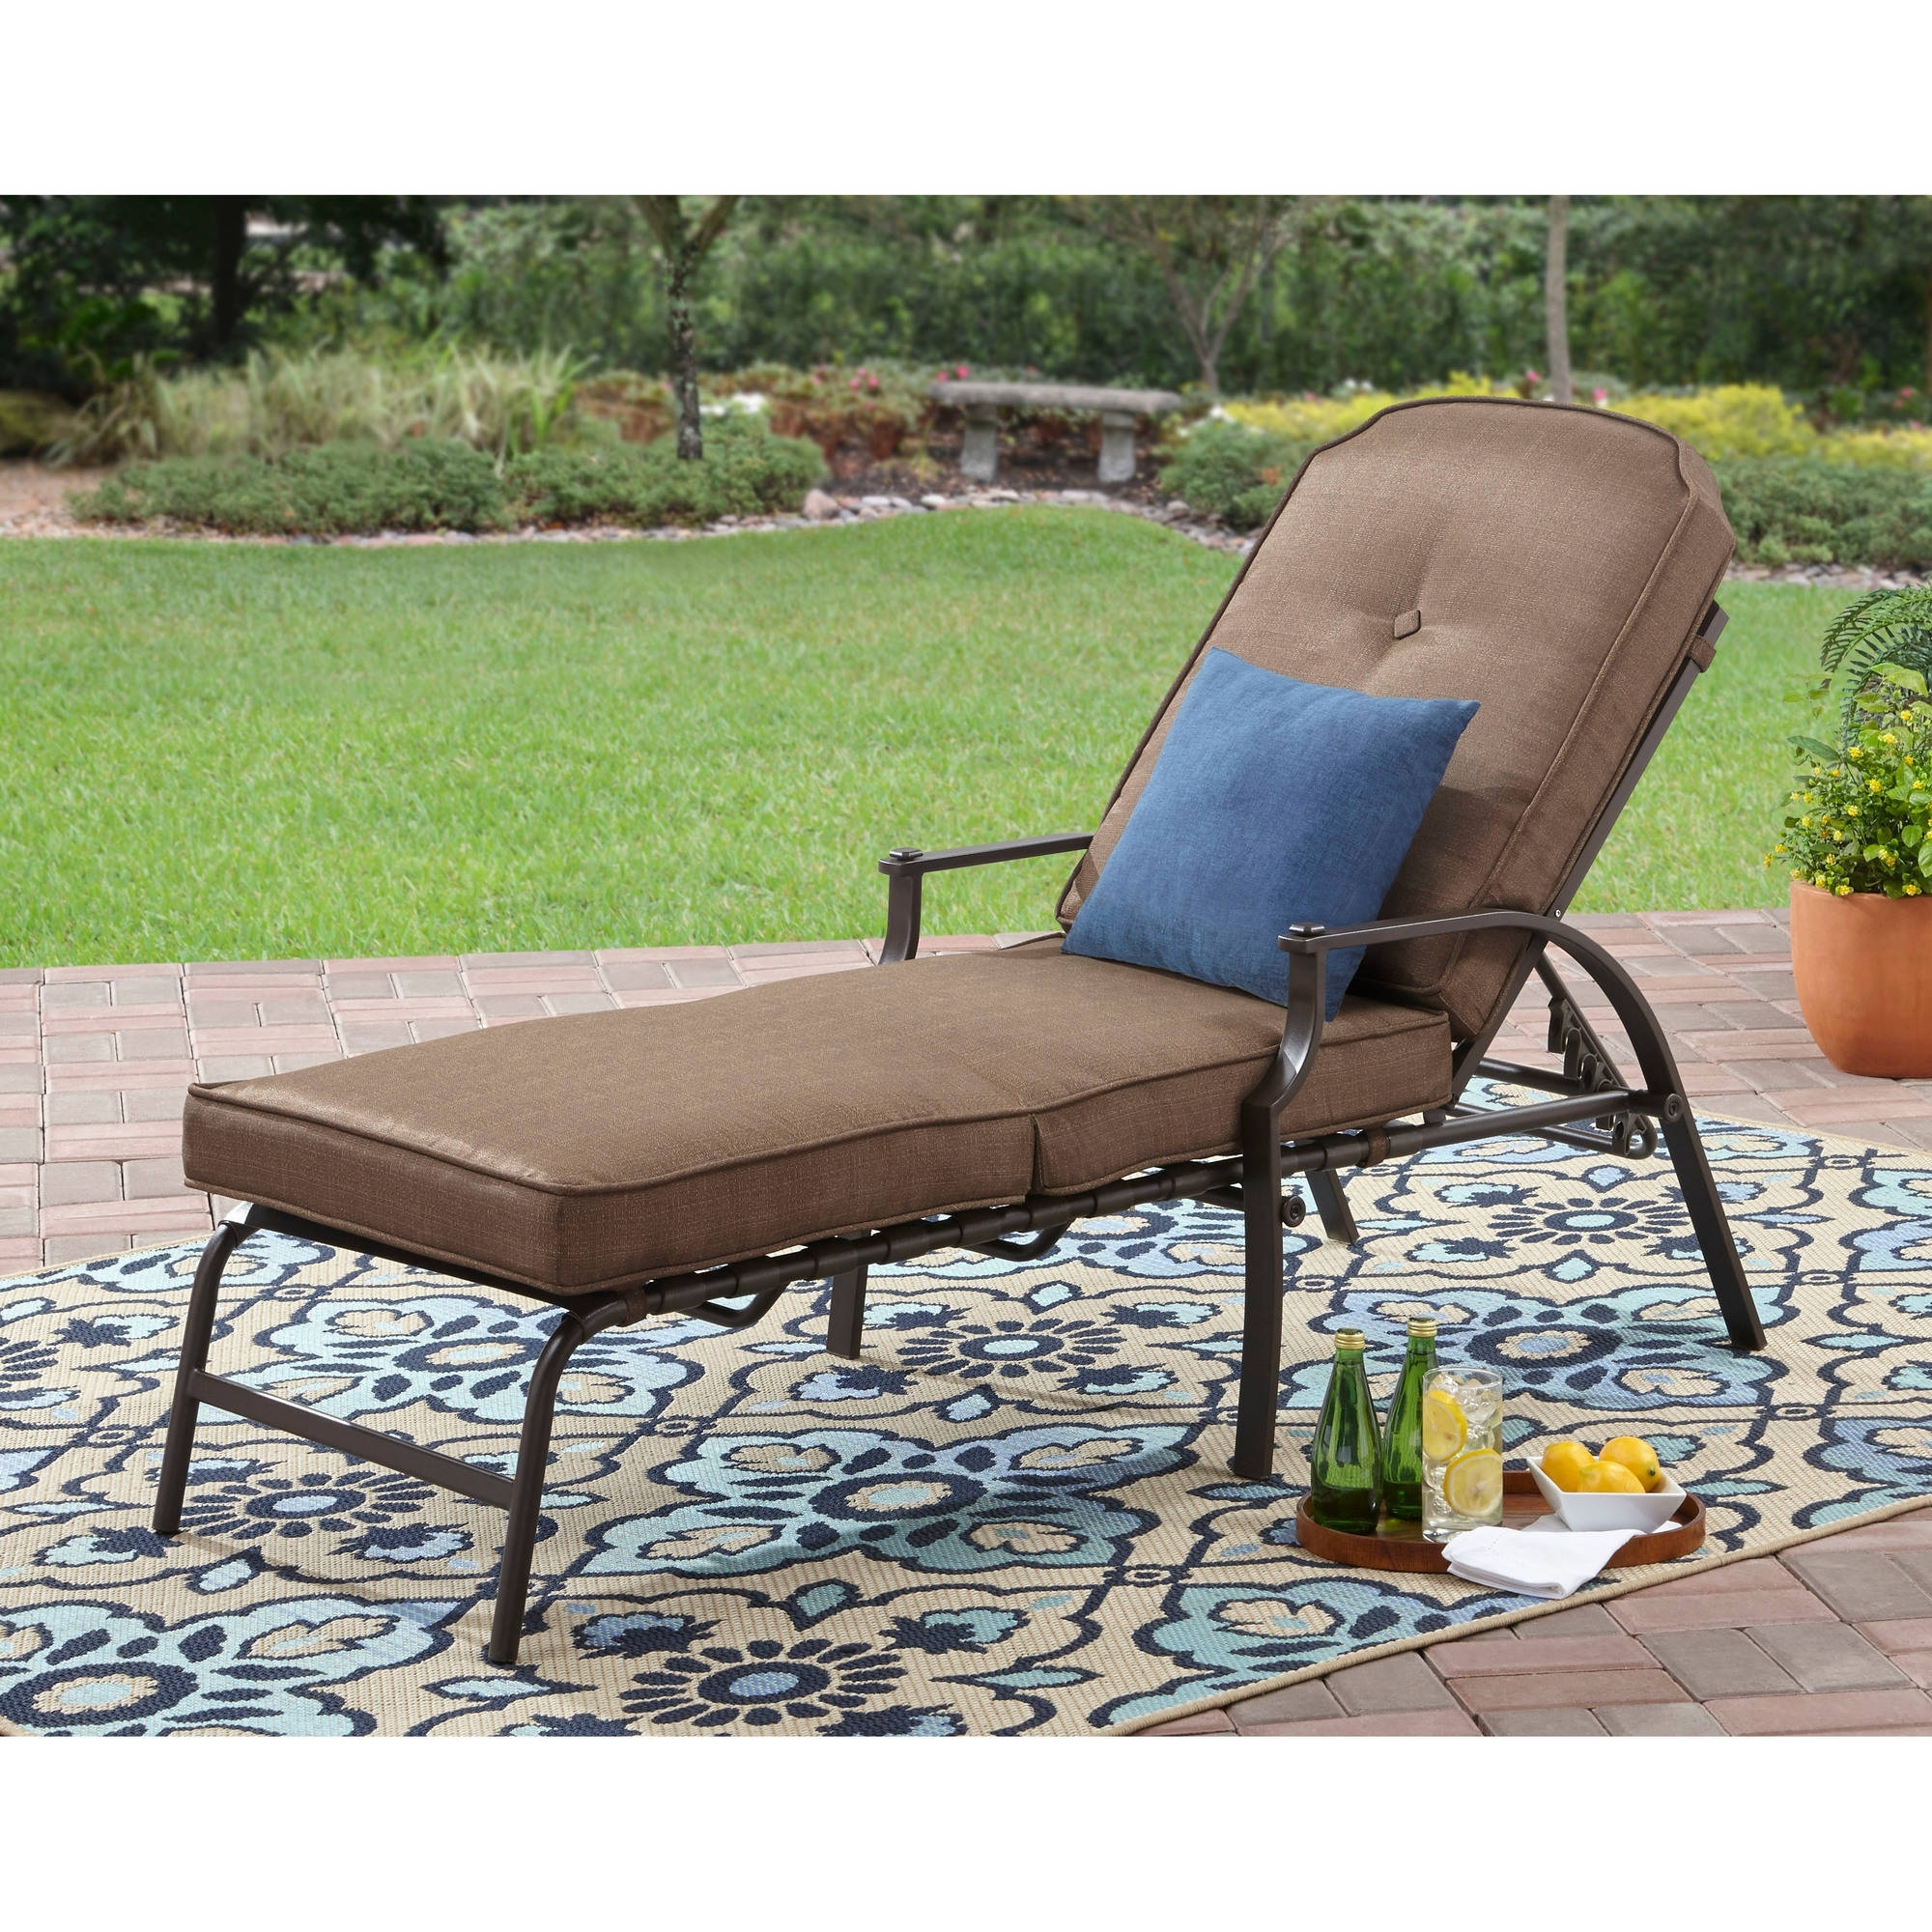 Folding Chaise Lounge Lawn Chairs In Fashionable Convertible Chair : Reclining Yard Chairs Garden Chaise Lounge (View 2 of 15)